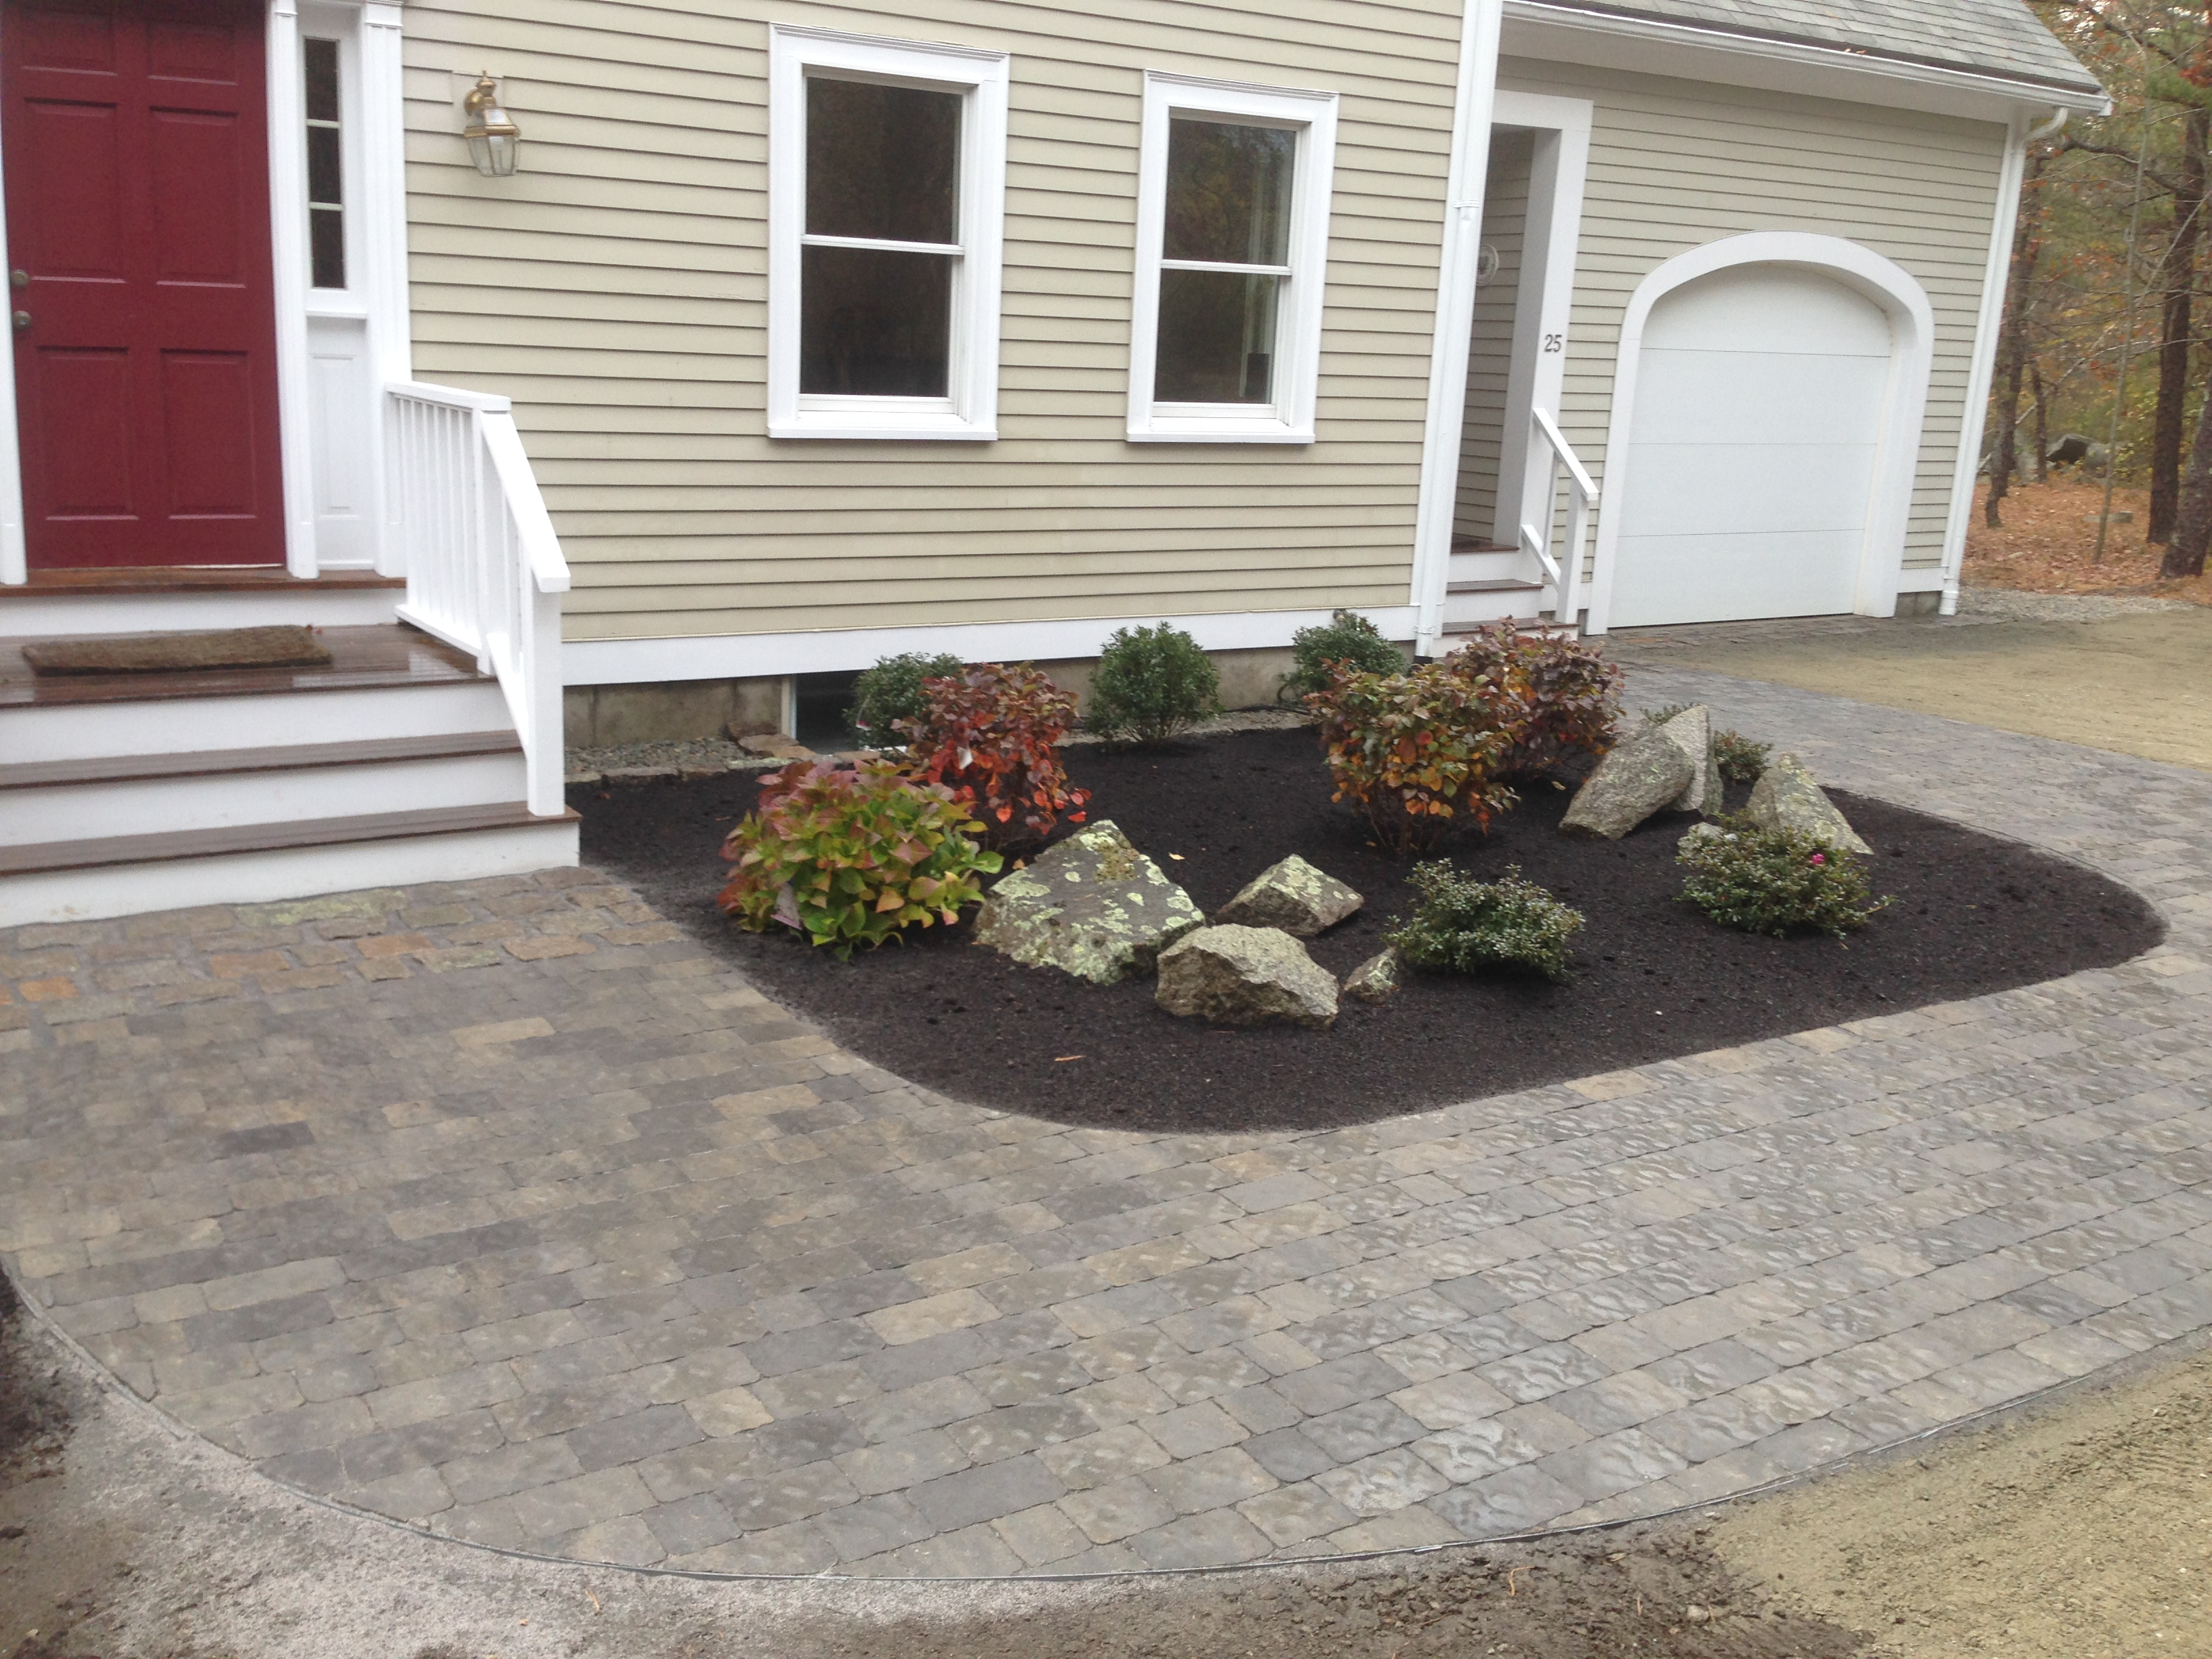 Foundation/Walkway Planting Bed